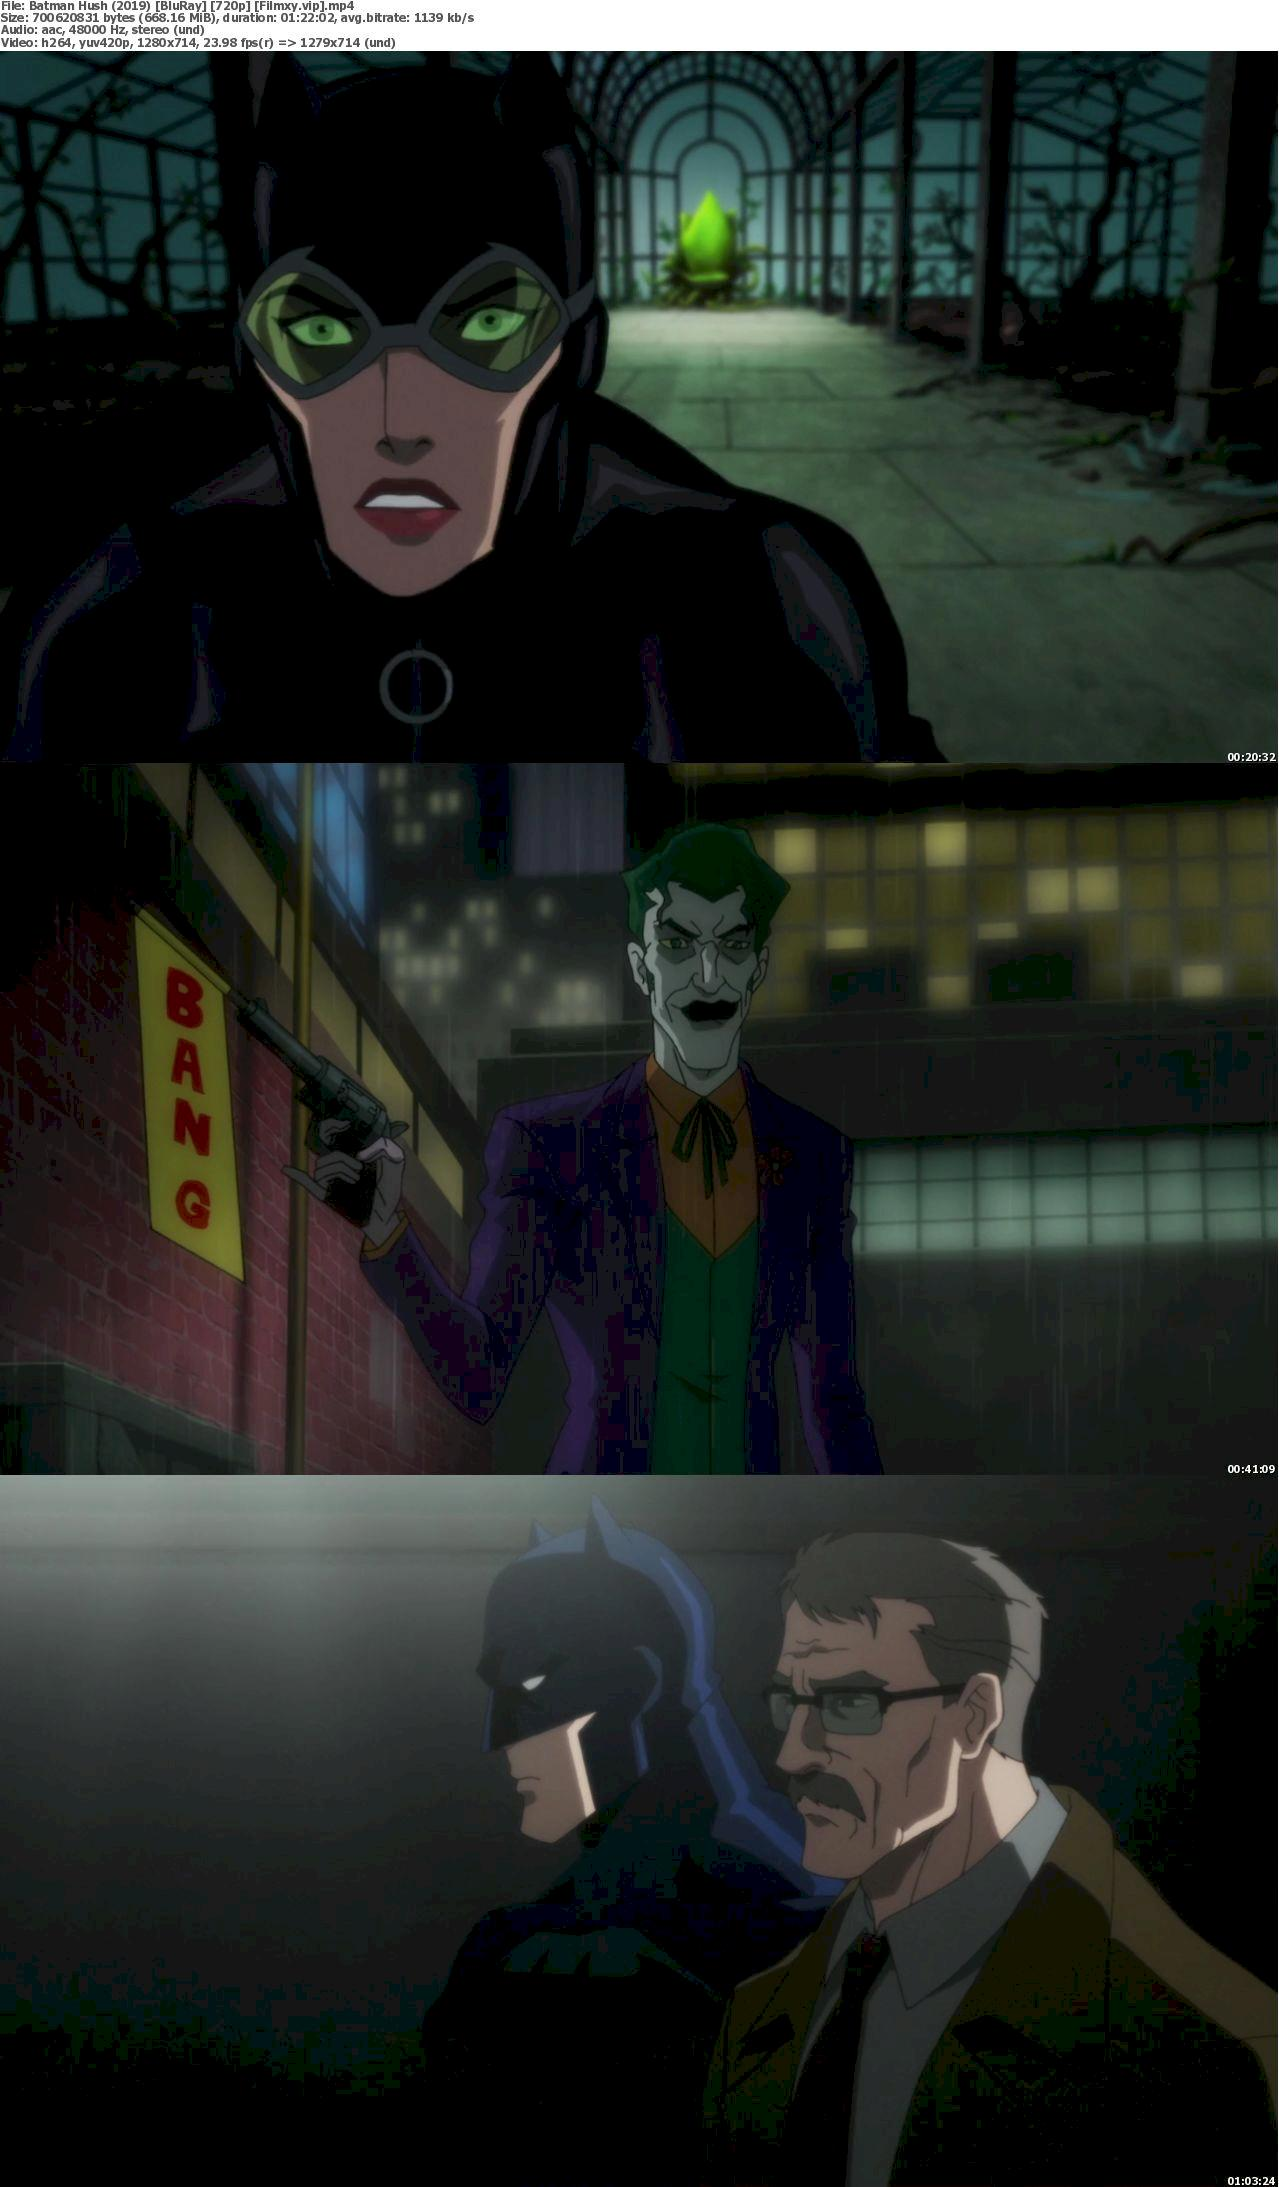 Batman: Hush (2019) [720p & 1080p] Bluray Free Movie Watch Online & Download 720p Screenshot